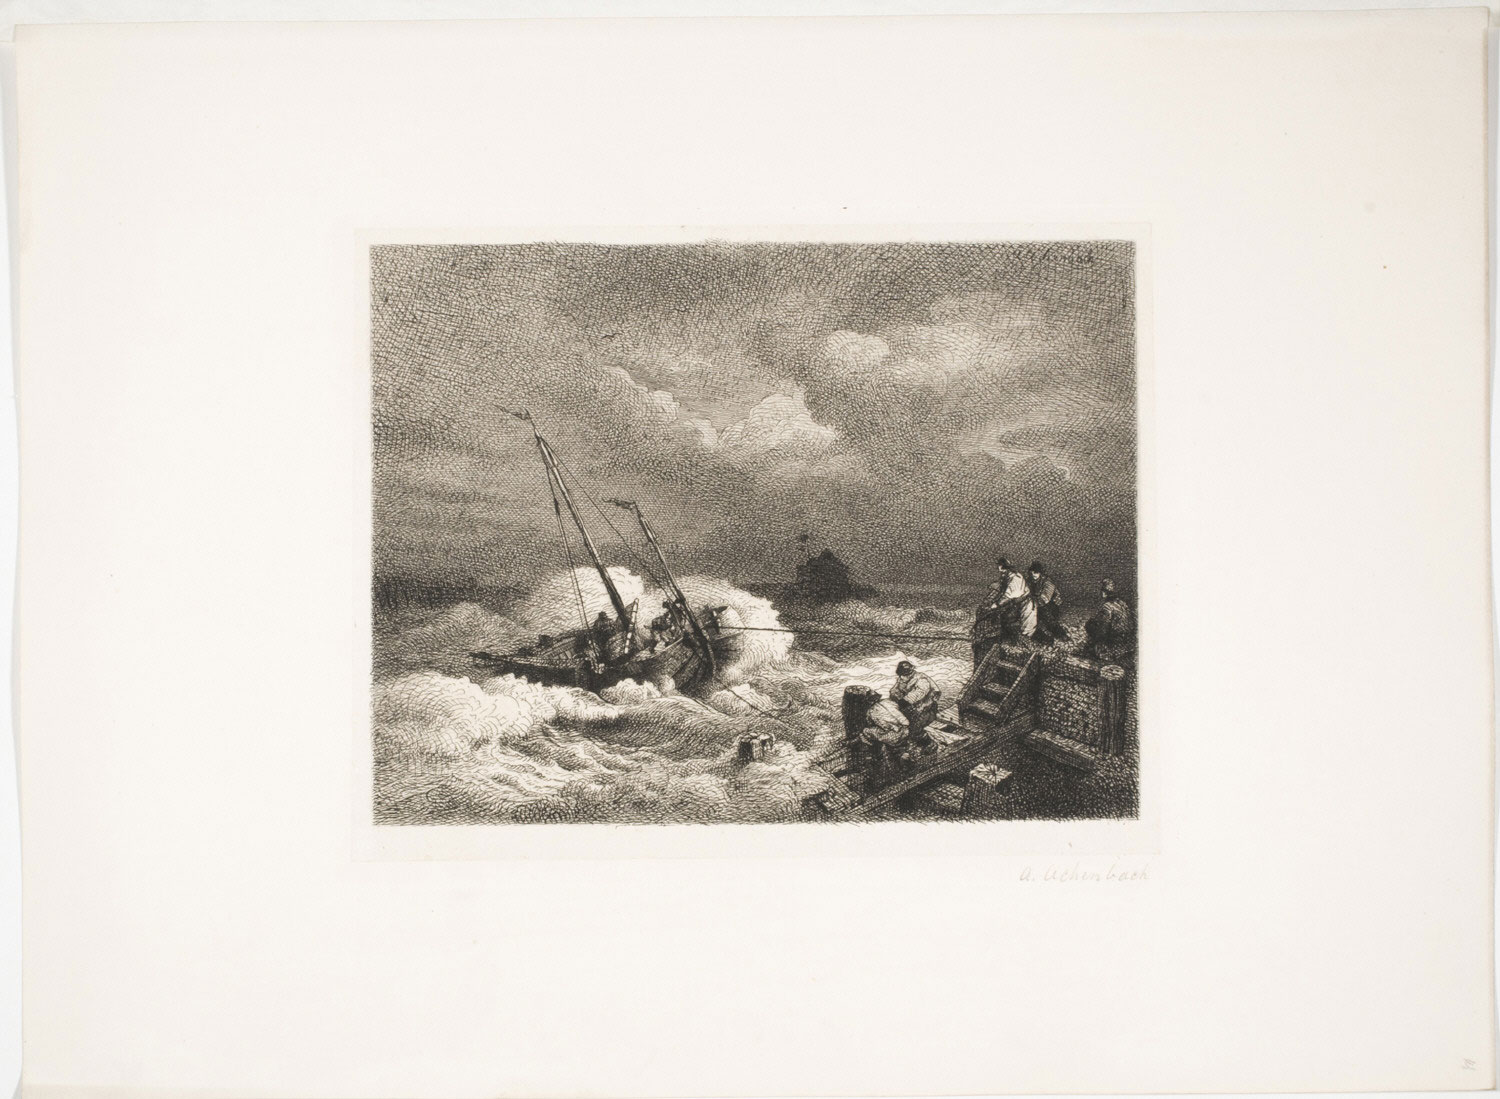 Ship Coming to Shore in a Storm